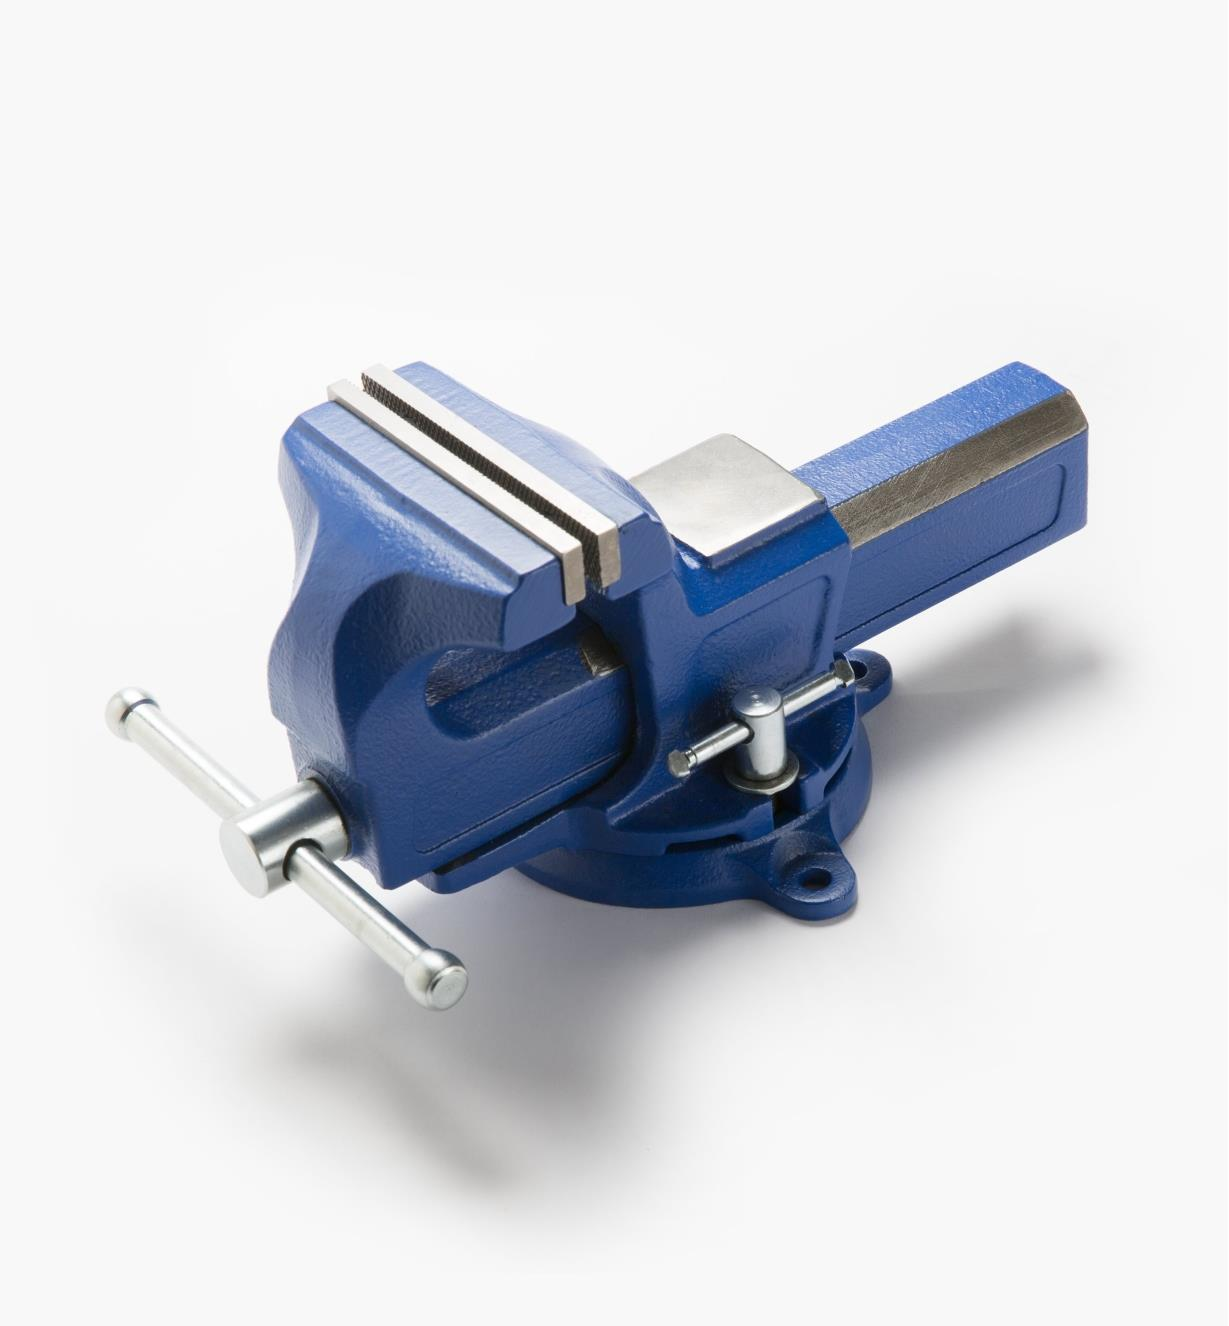 70G0104 - Small Swivel-Base Mechanic's Vise